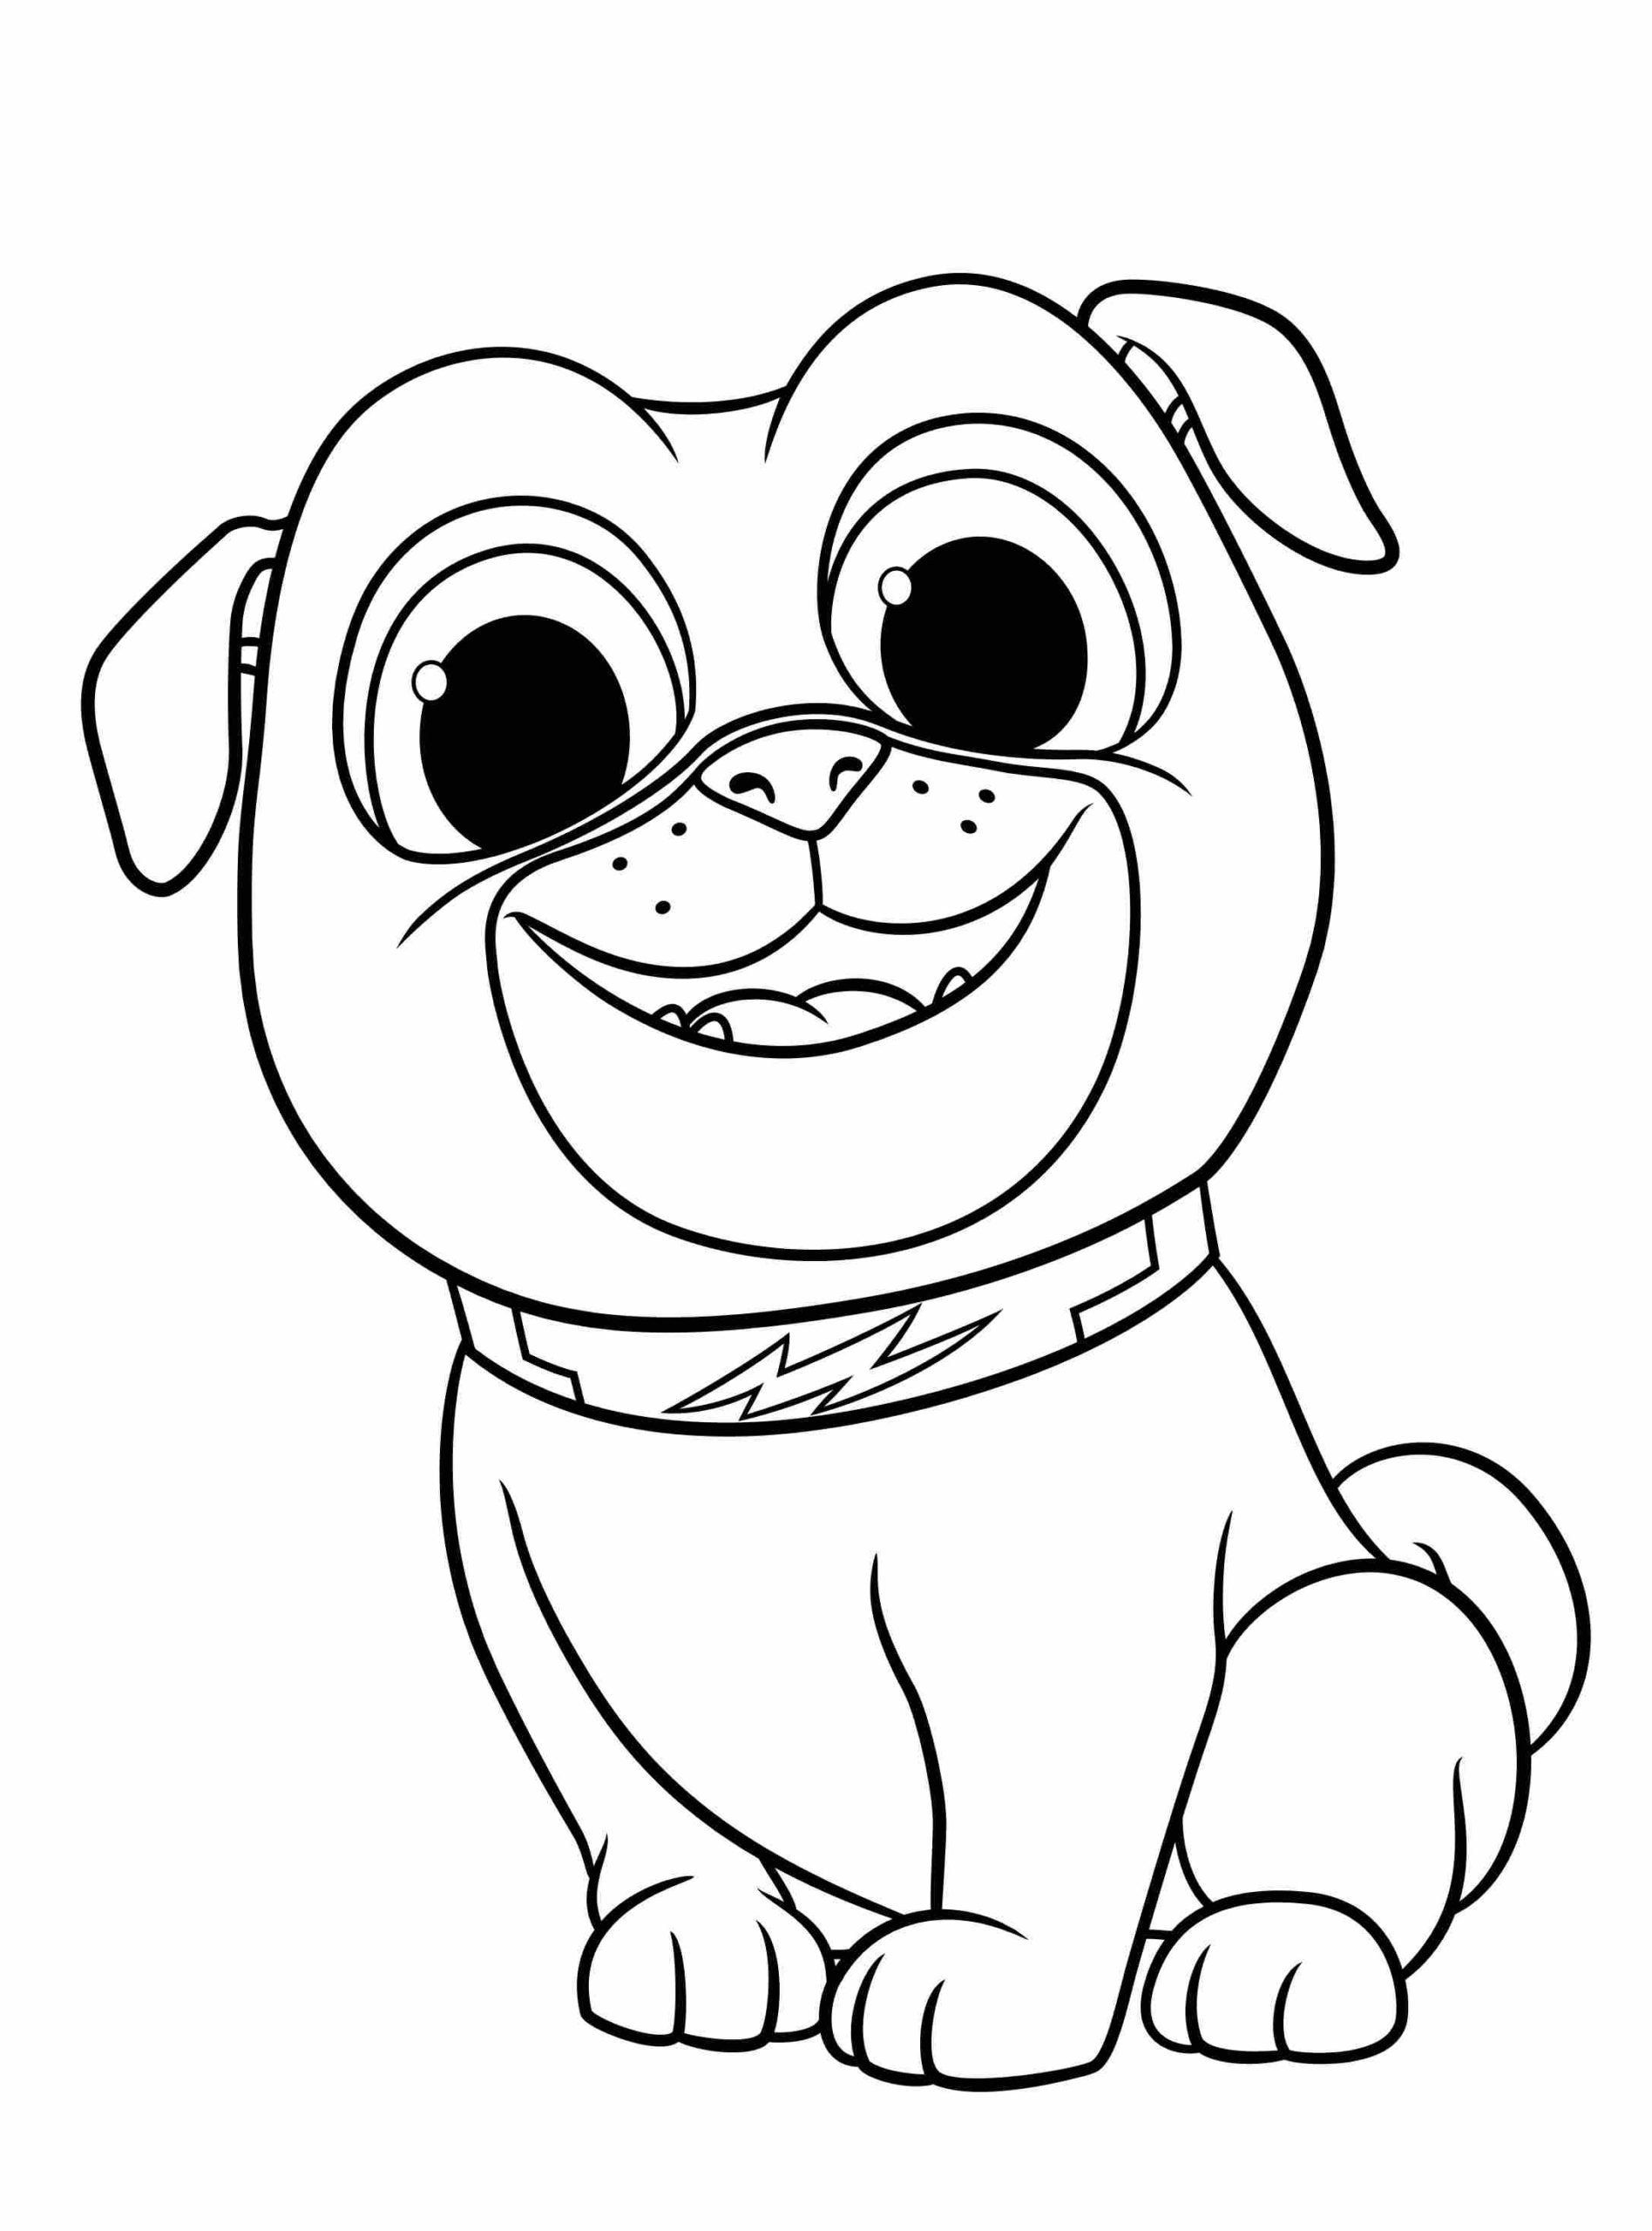 Cute Coloring Pages Of Puppies Coloring Book Puppy Coloring Pages Freetable Puppy Coloring Pages Dog Coloring Page Unicorn Coloring Pages